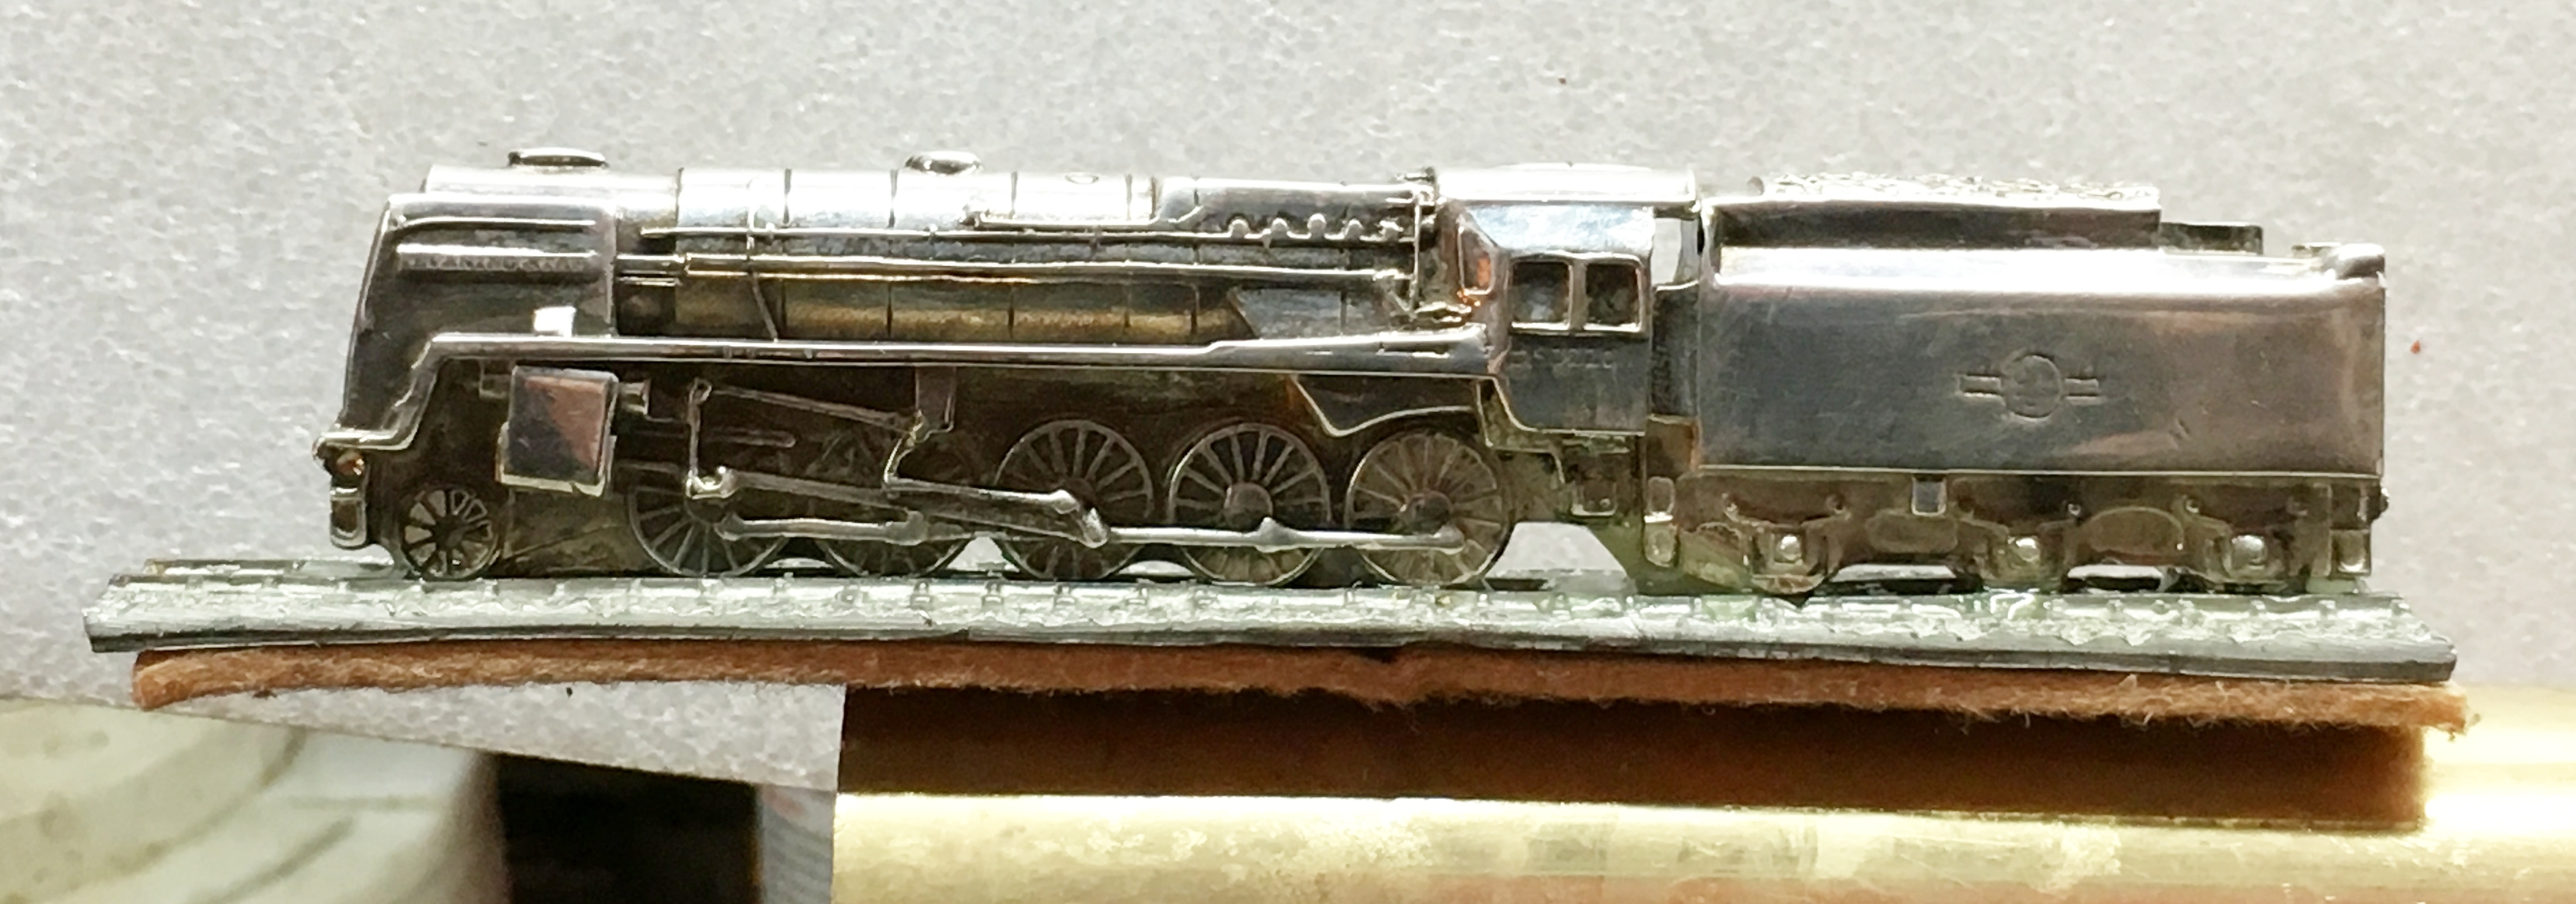 Evening Star Locomotive no:92220 Tiller Pin